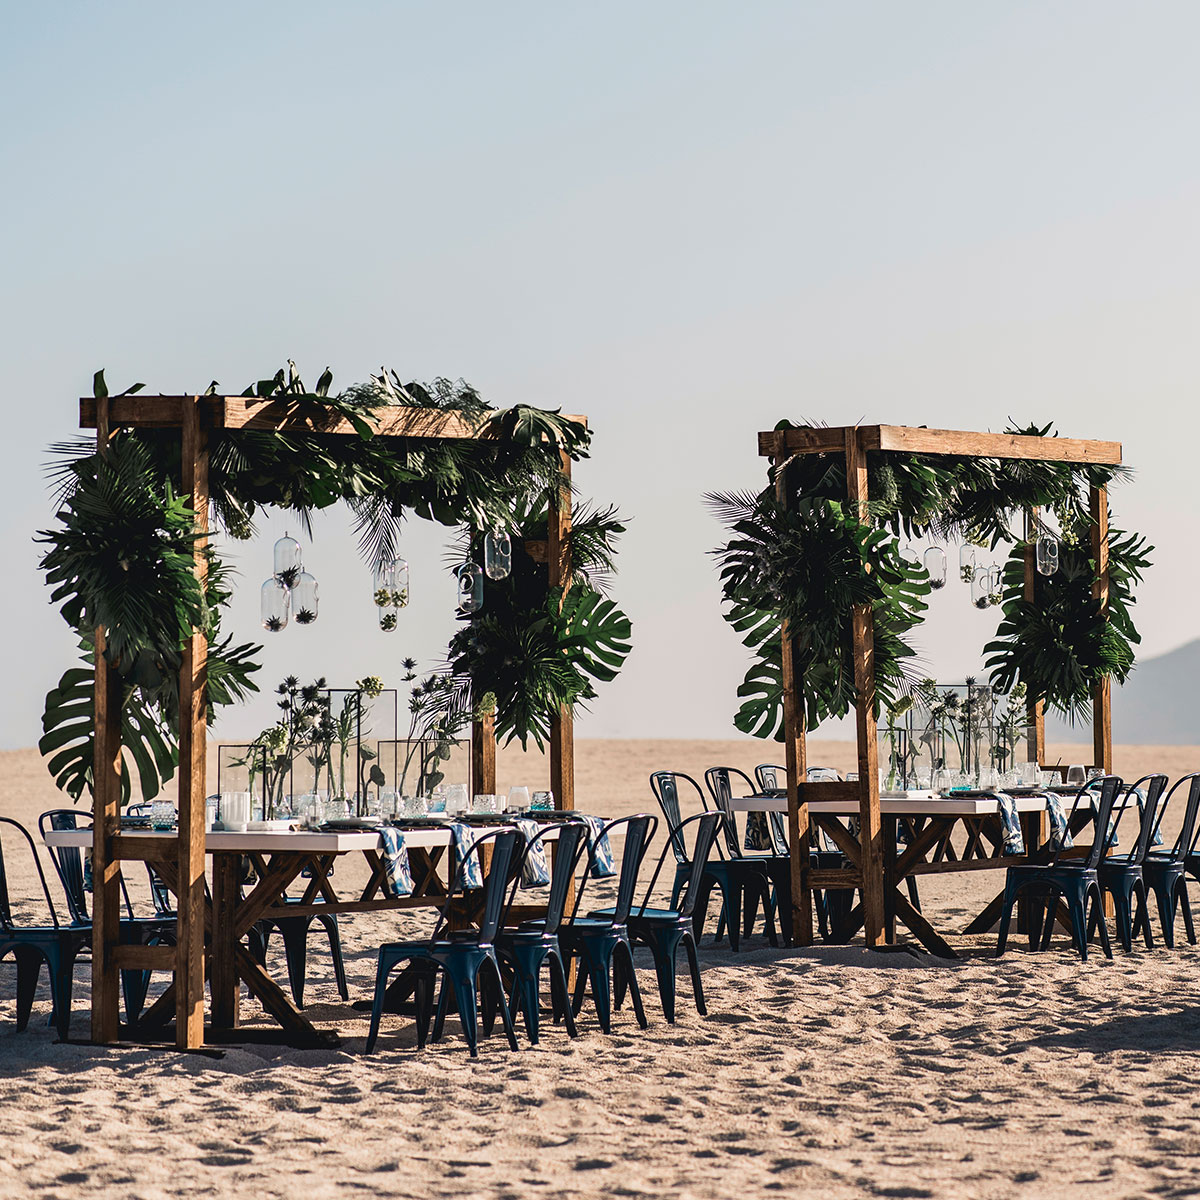 Paradisus wedding design by del cabo weddings photo by dennis berti event design and wedding planning 15